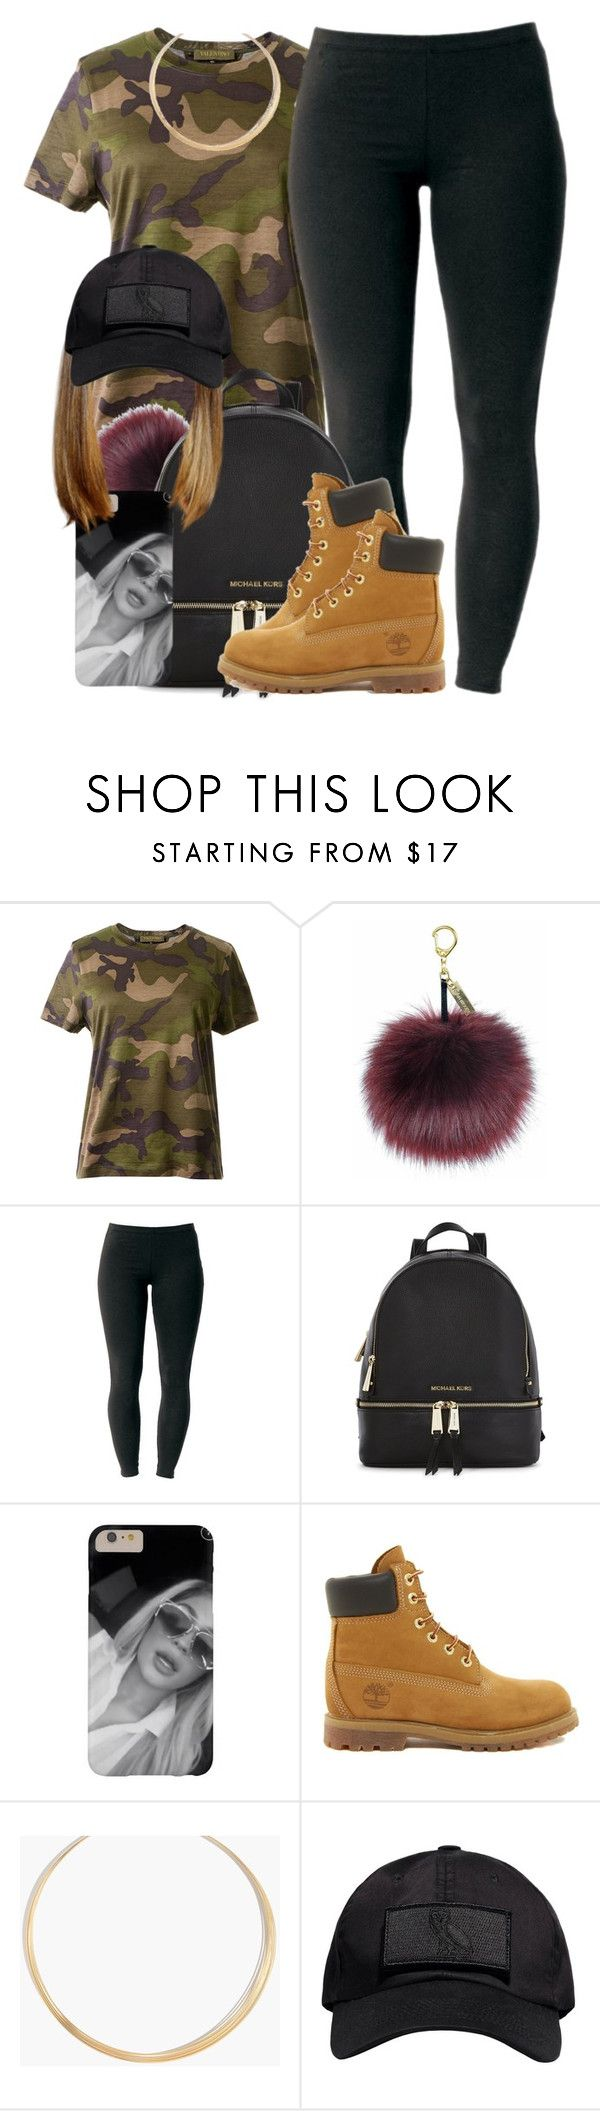 """Inspired by @nasiaamiraaa"" by ariangrant ❤ liked on Polyvore featuring Valentino, Joe Browns, Michael Kors, Timberland, Madewell and October's Very Own"